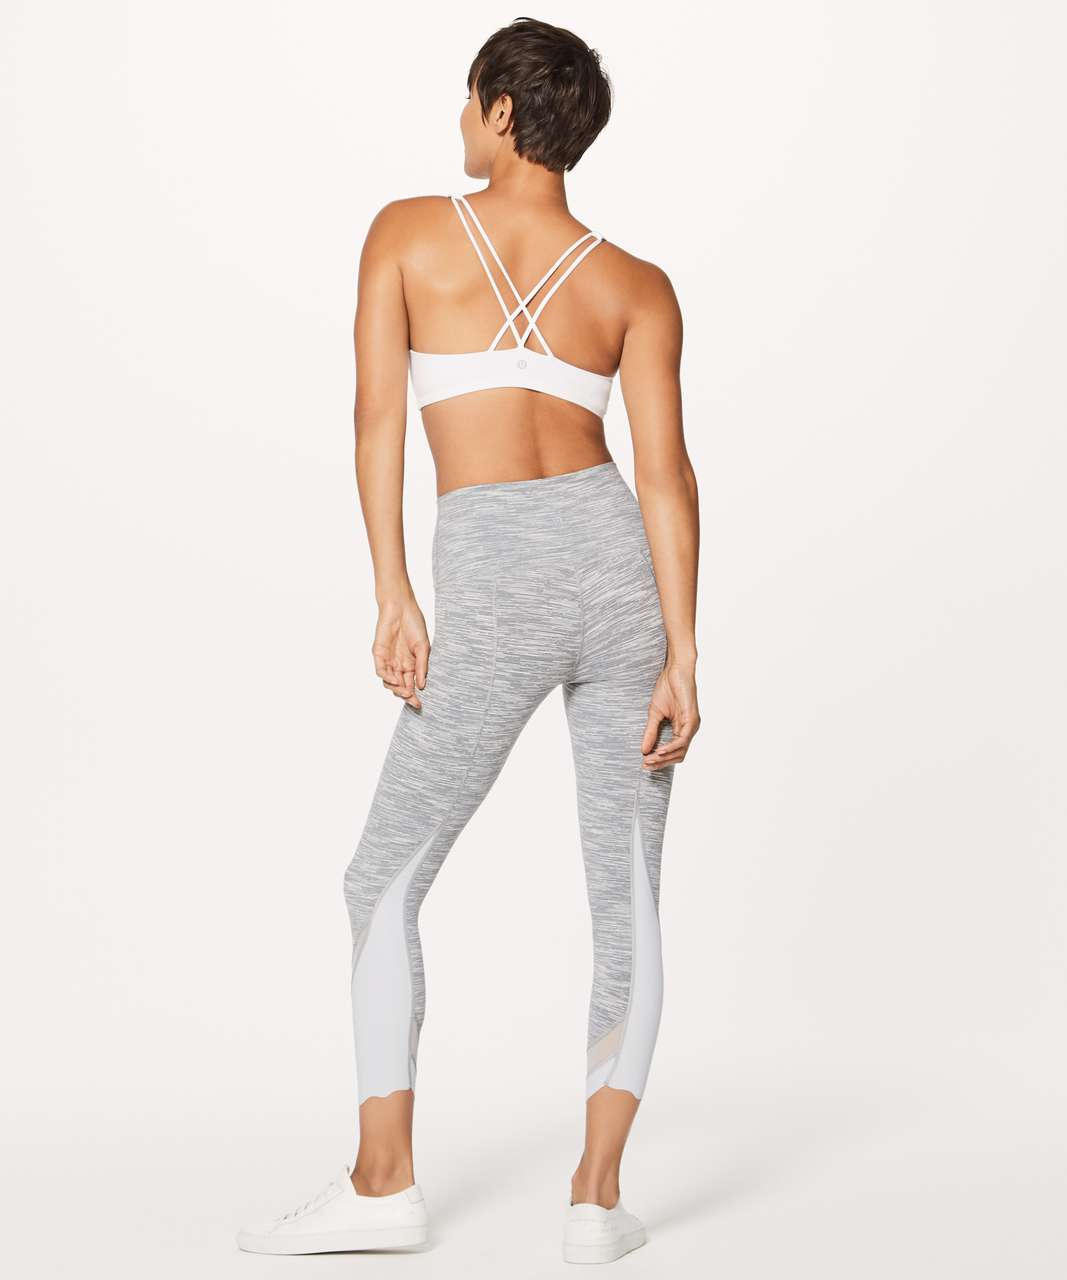 "Lululemon Wunder Under Crop II (Special Edition) *Scallop 23"" - Wee Are From Space Silver Spoon / Silver Spoon"